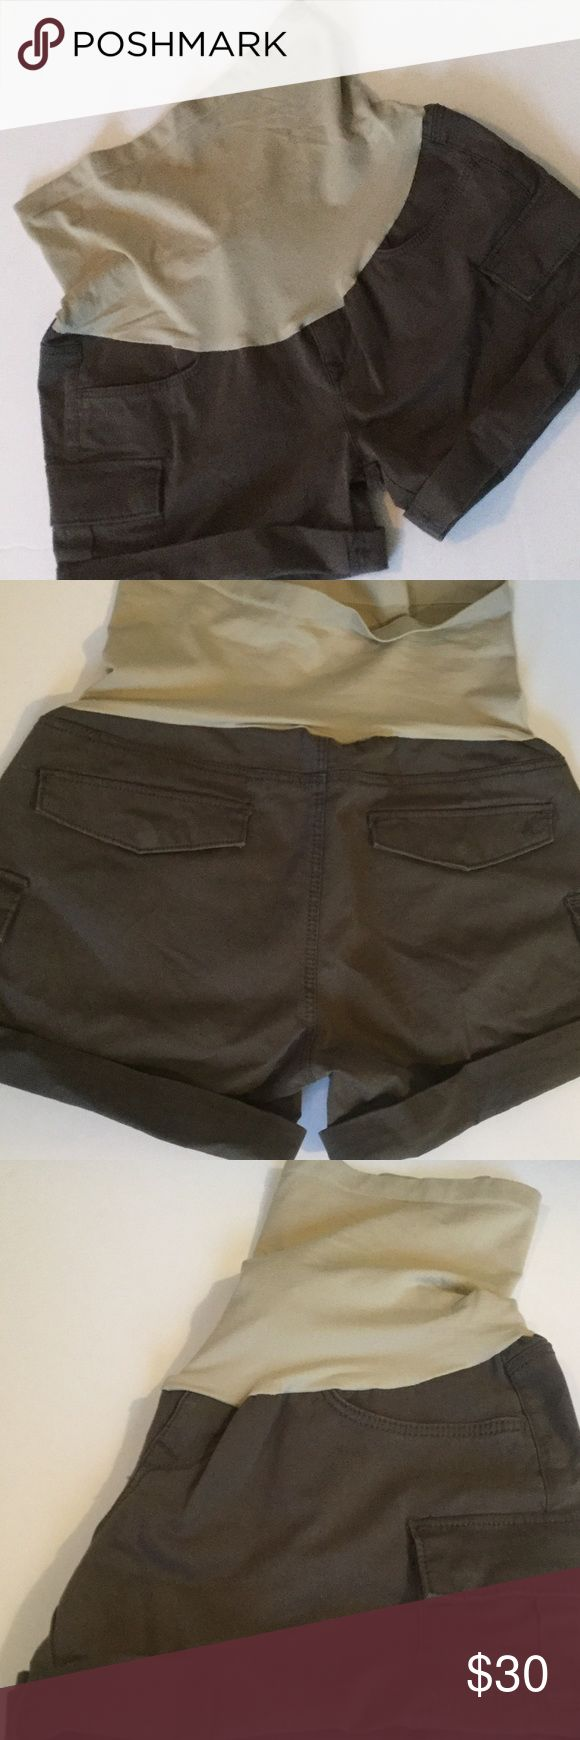 A pea in the pod Mavi shorts Super soft maternity shorts, secret fit belly, excellent condition, cargo side pockets w snap closure. Worn once. 98% cotton. Mavi. XS. A Pea in the Pod Shorts Cargos